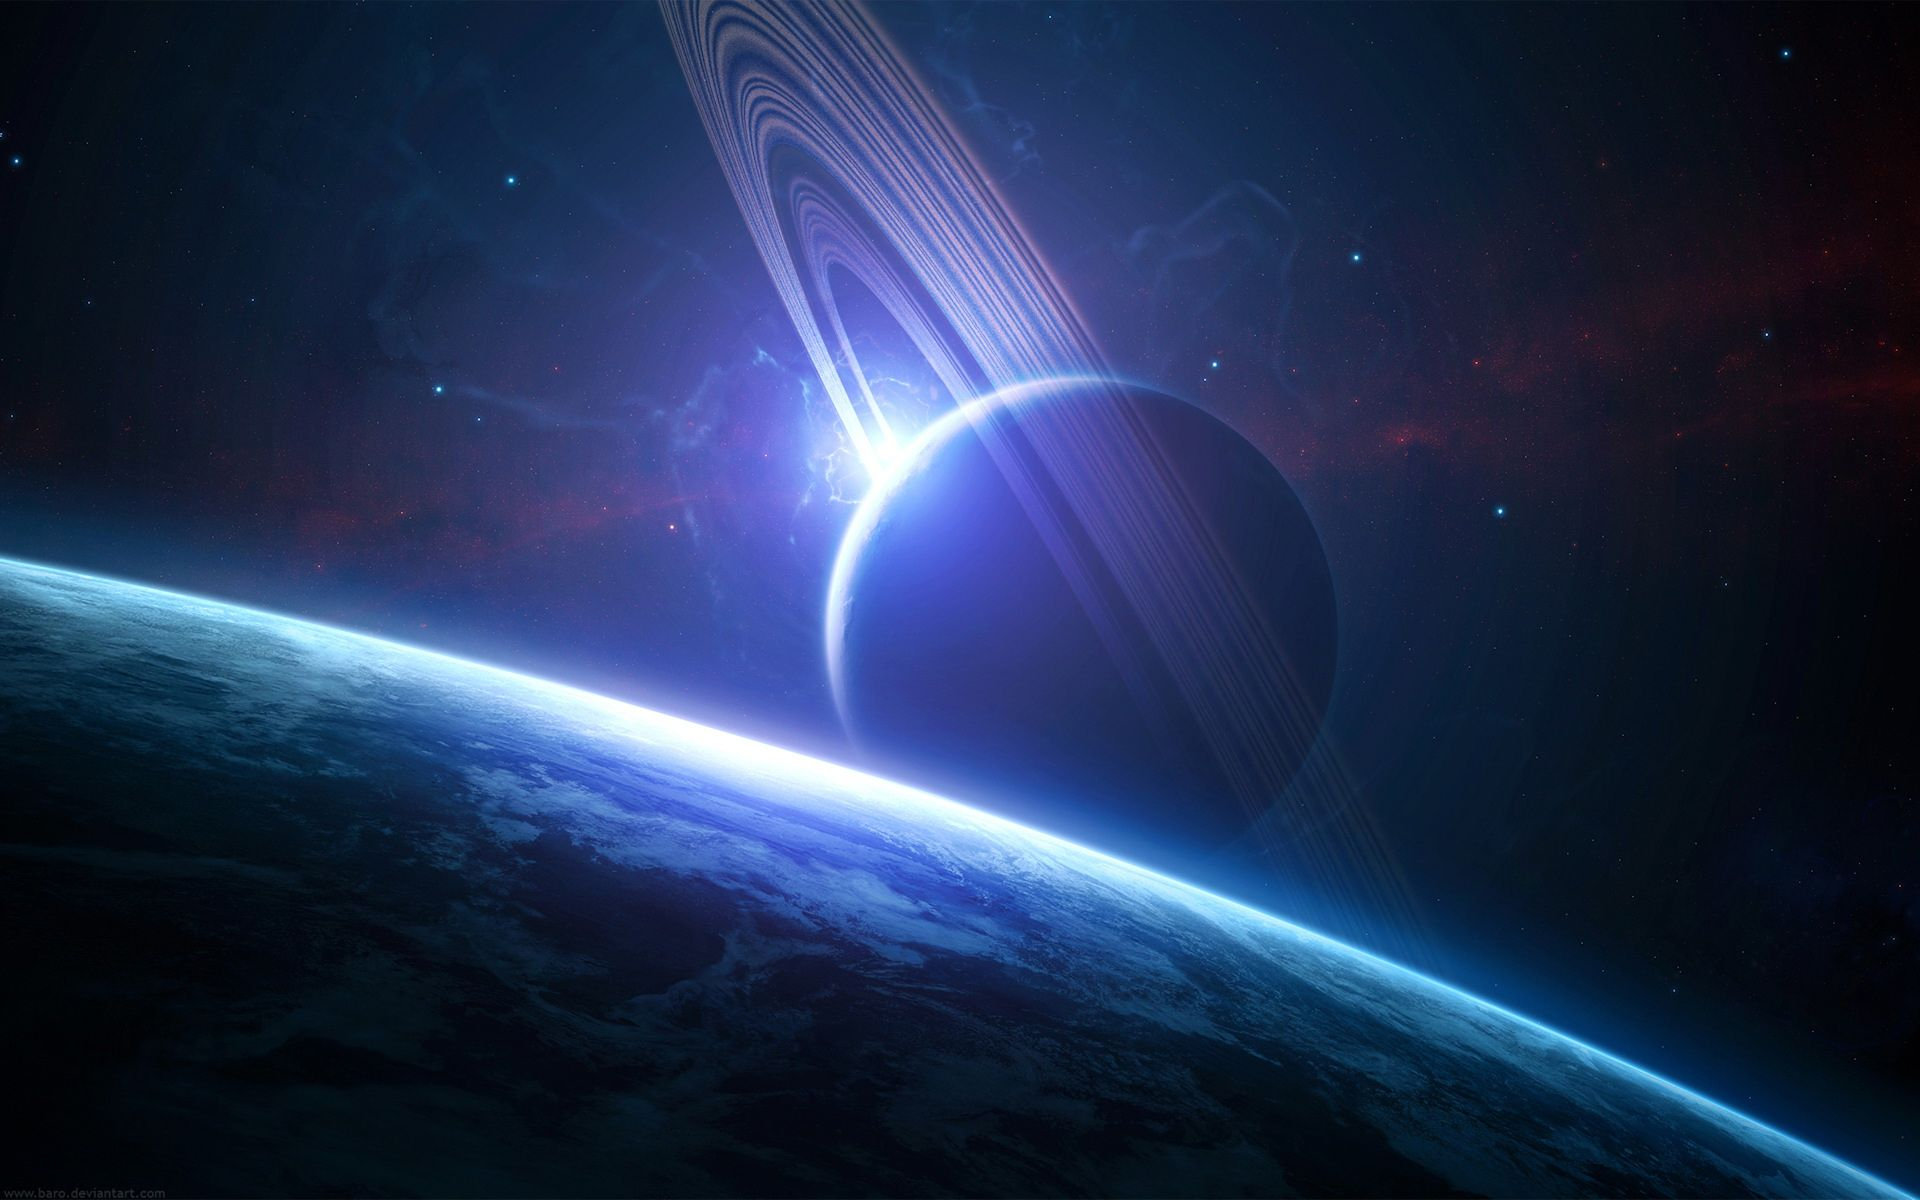 space fantasy wallpapers 8 | space fantasy wallpapers | pinterest